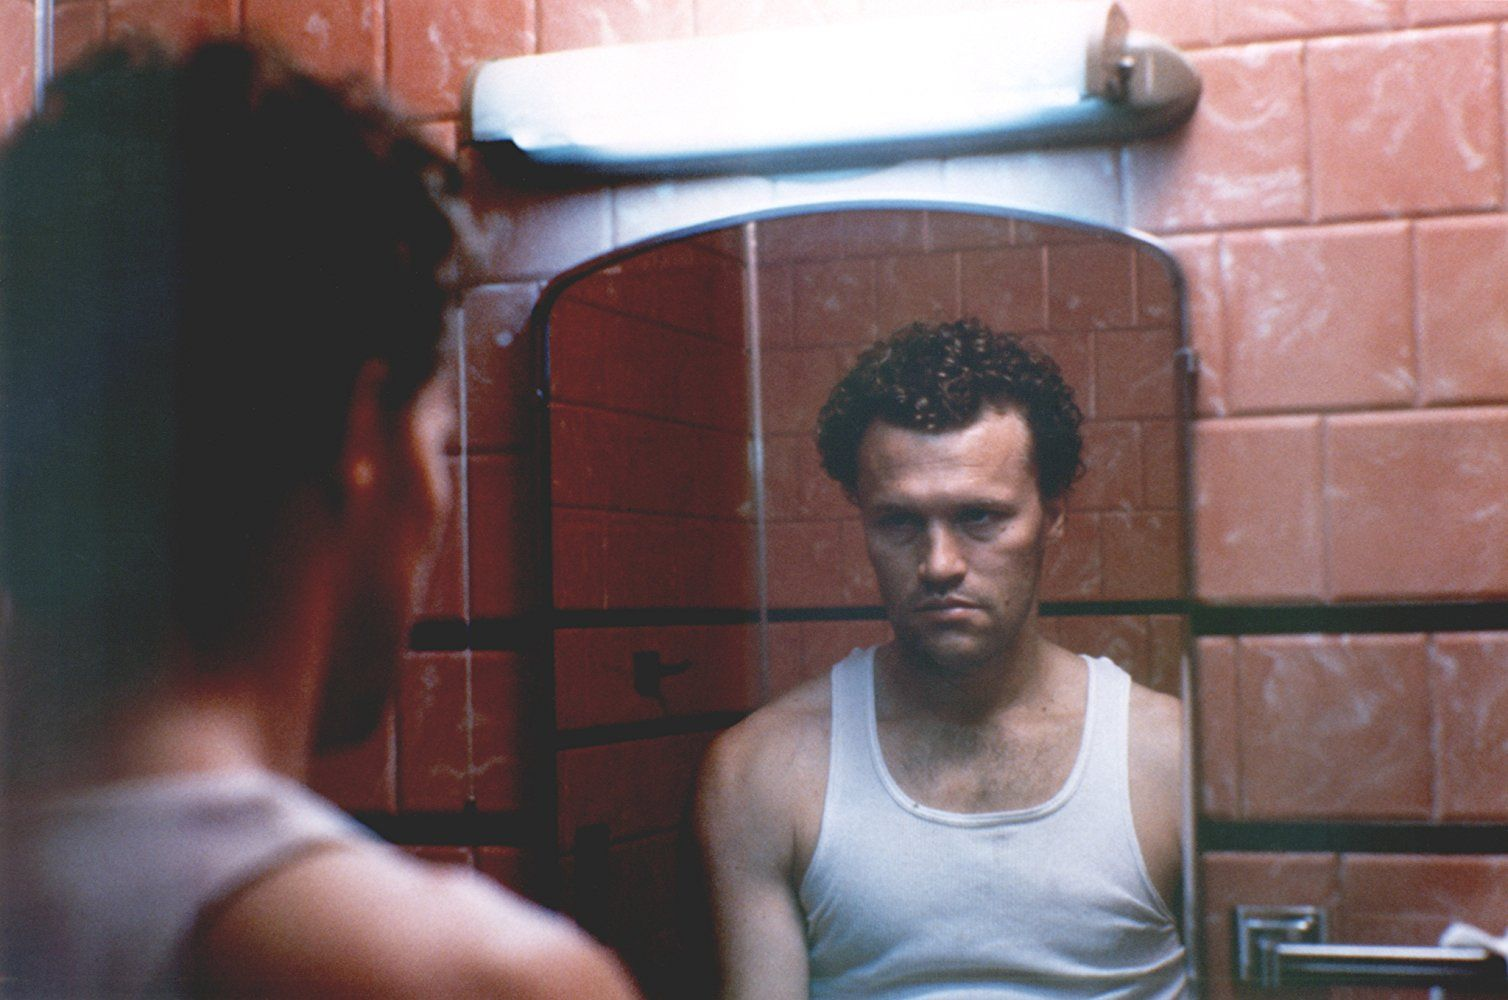 Hollywood Serial Killer Movies That Are Actually Based on True Crimes